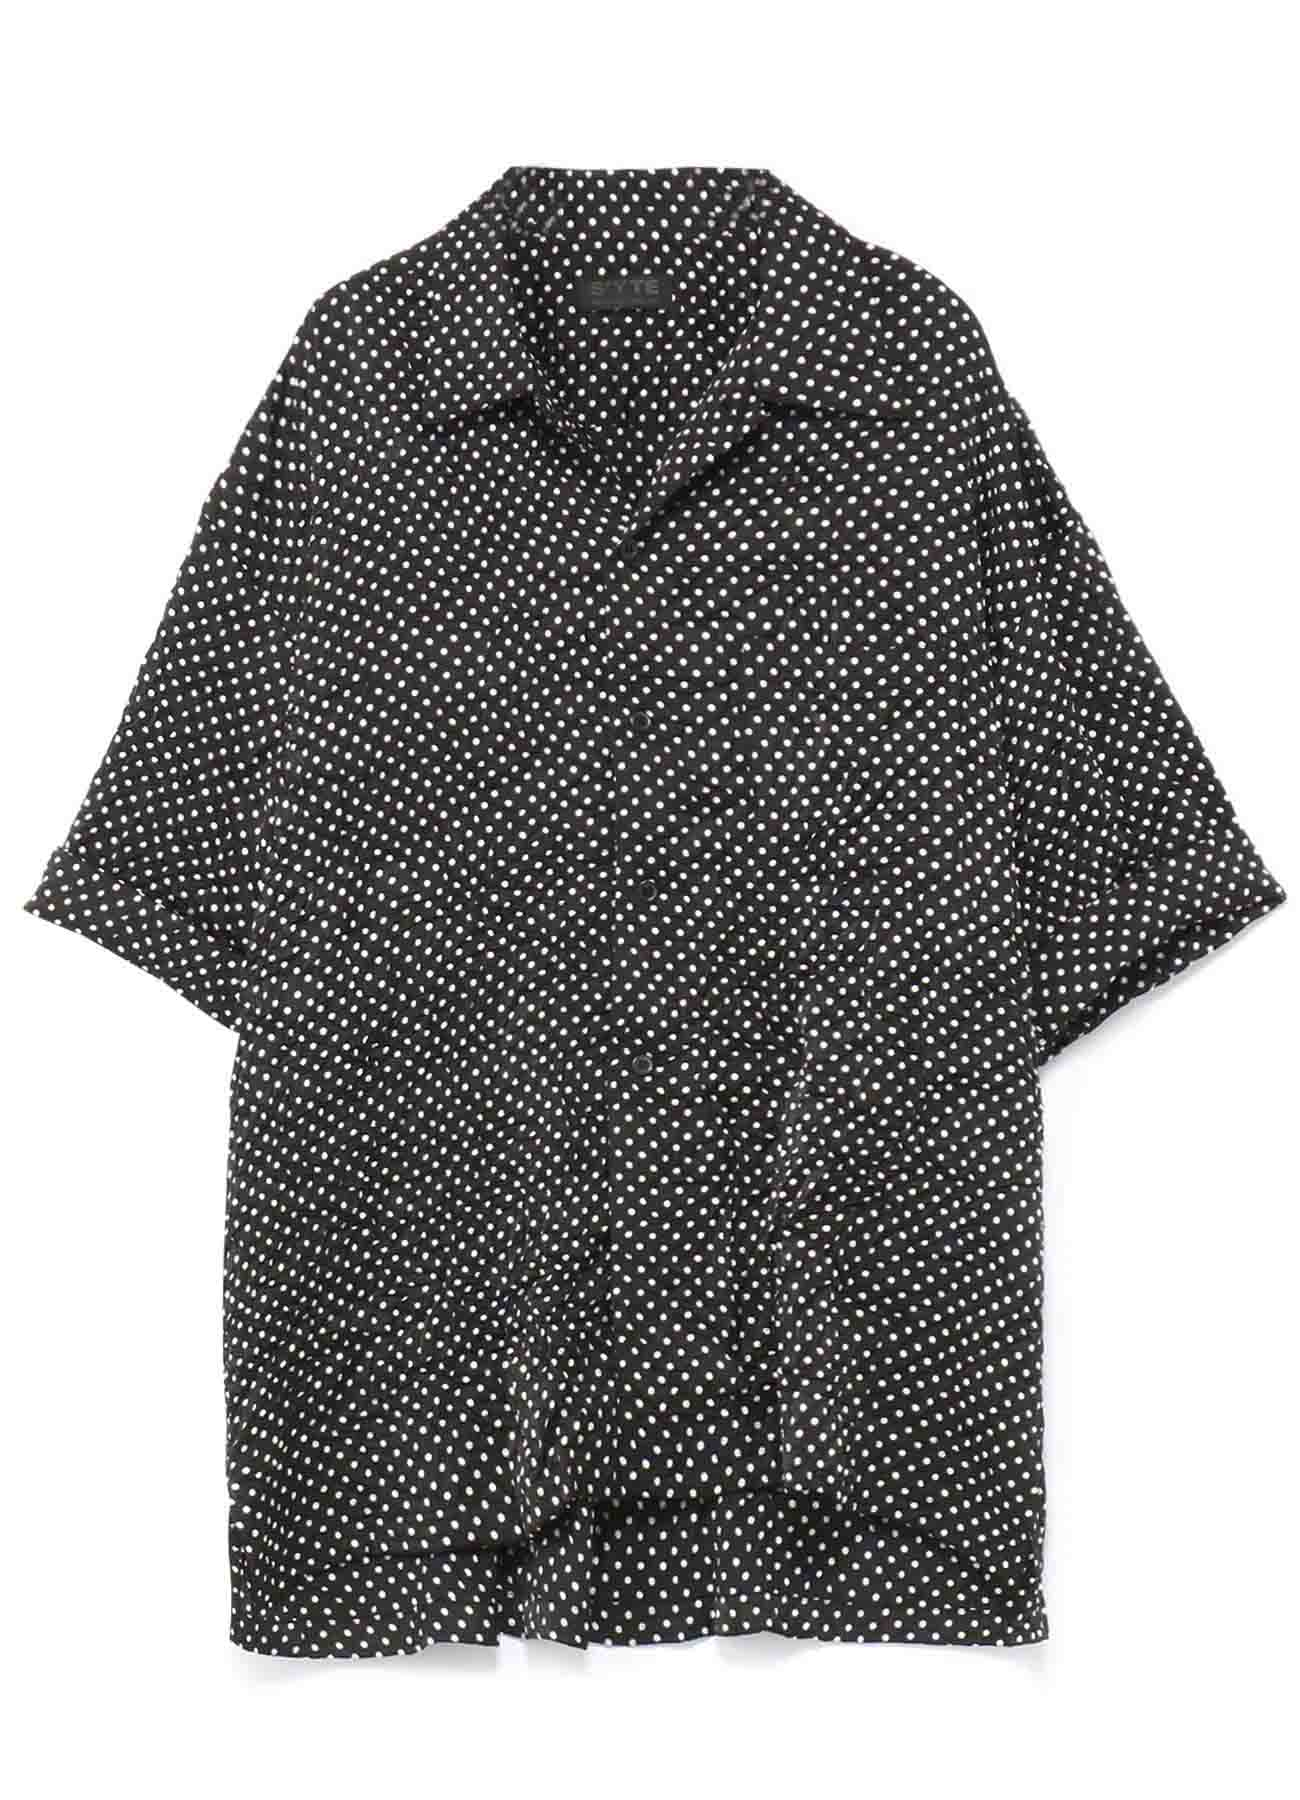 Pe/Dot Wrinkles Big Short Sleeve Shirt